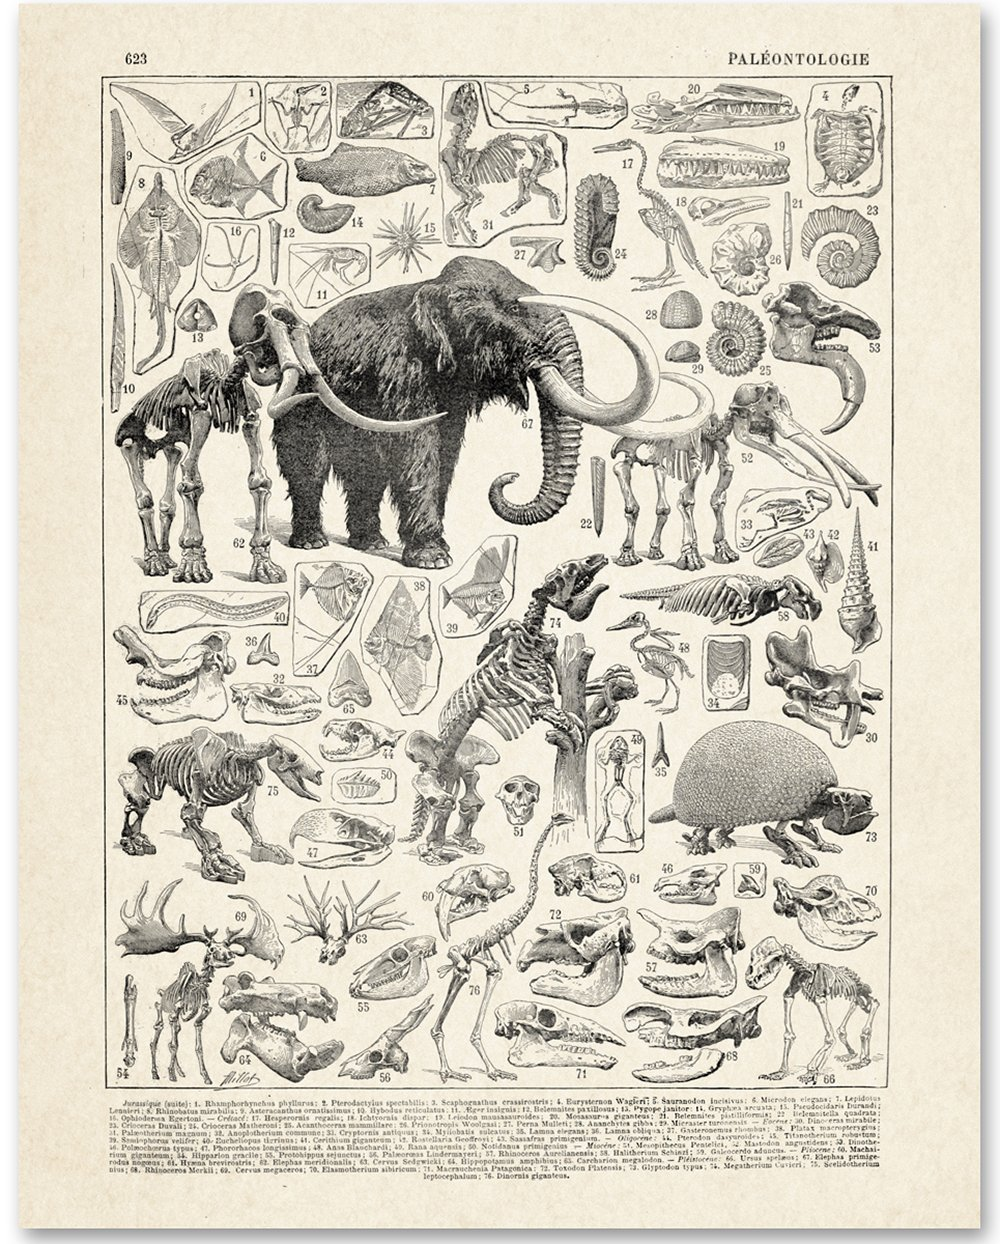 Paleontology - 11x14 Unframed Art Print - Great Gift for Dinosaur Lovers And Child's Room Decor